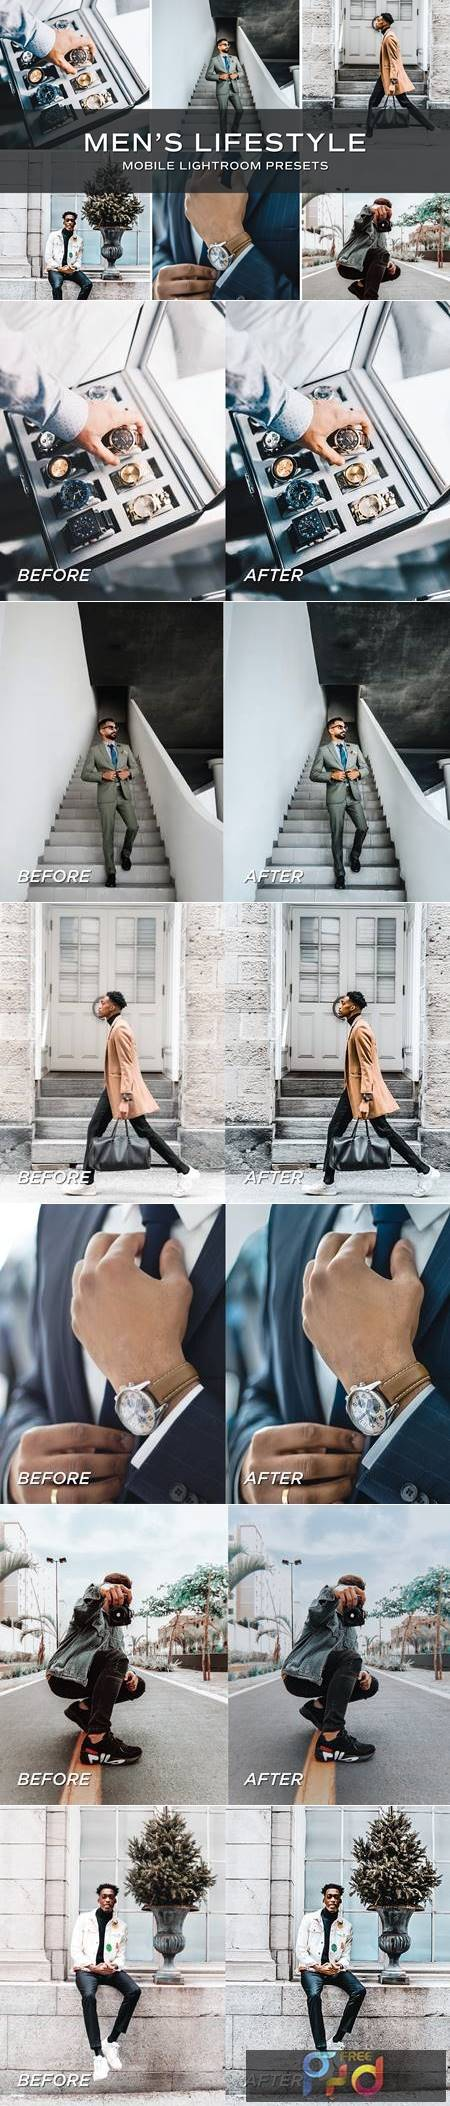 5 Mens Lifestyle Lightroom Presets 5701600 1